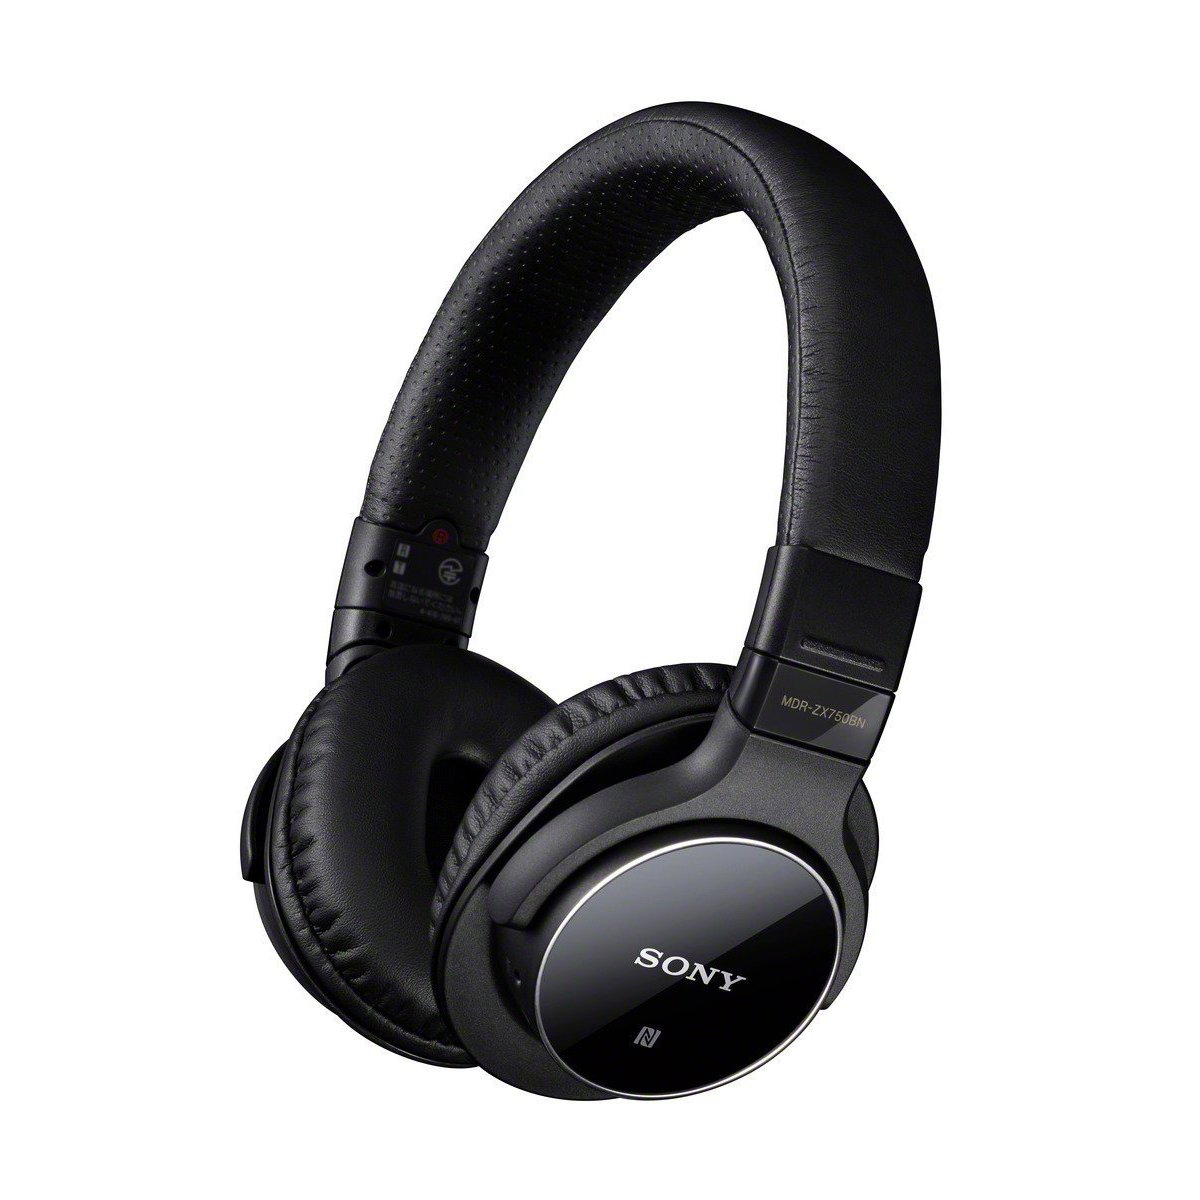 Sony MDR-ZX770DC Bluetooth and Noise Canceling Headphones/Headset with Case - MDRZX770DC (Black)